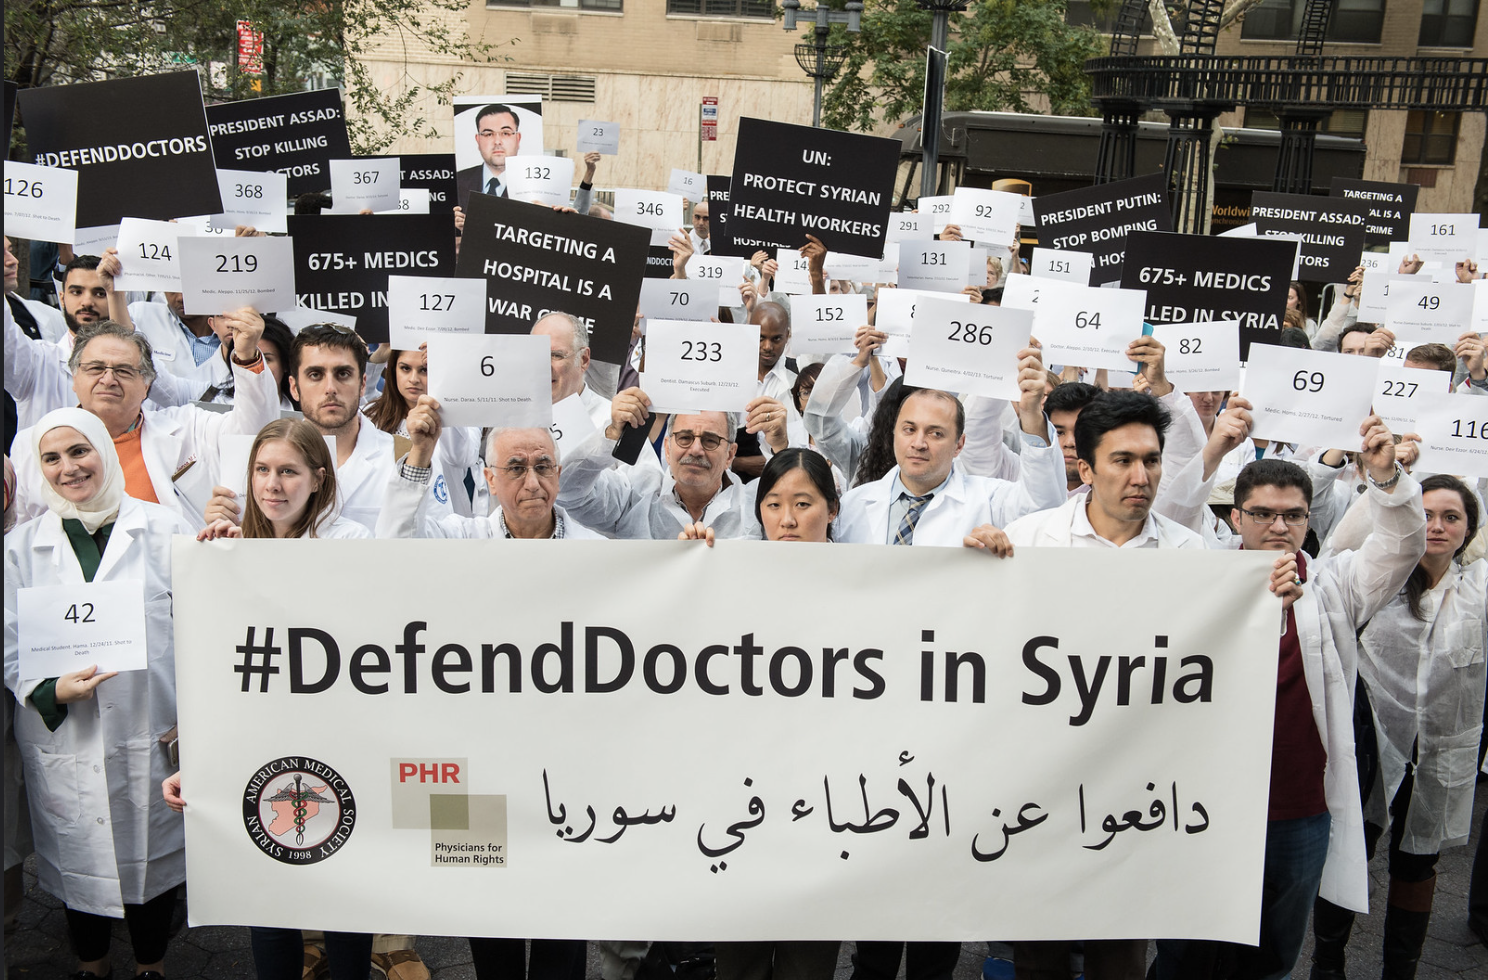 Caption: Medical personnel have been demanding protection for doctors in Syria for years, now this protection is critical to keep the deadly coronavirus from spreading. Here, supporters demand an end to the bombing of hospitals in Syria at a die-in to defend Syrian health professionals, November 4, 2015 (Photo by Michael Hnatov courtesy Physicians for Human Rights) Creative Commons license via Flickr